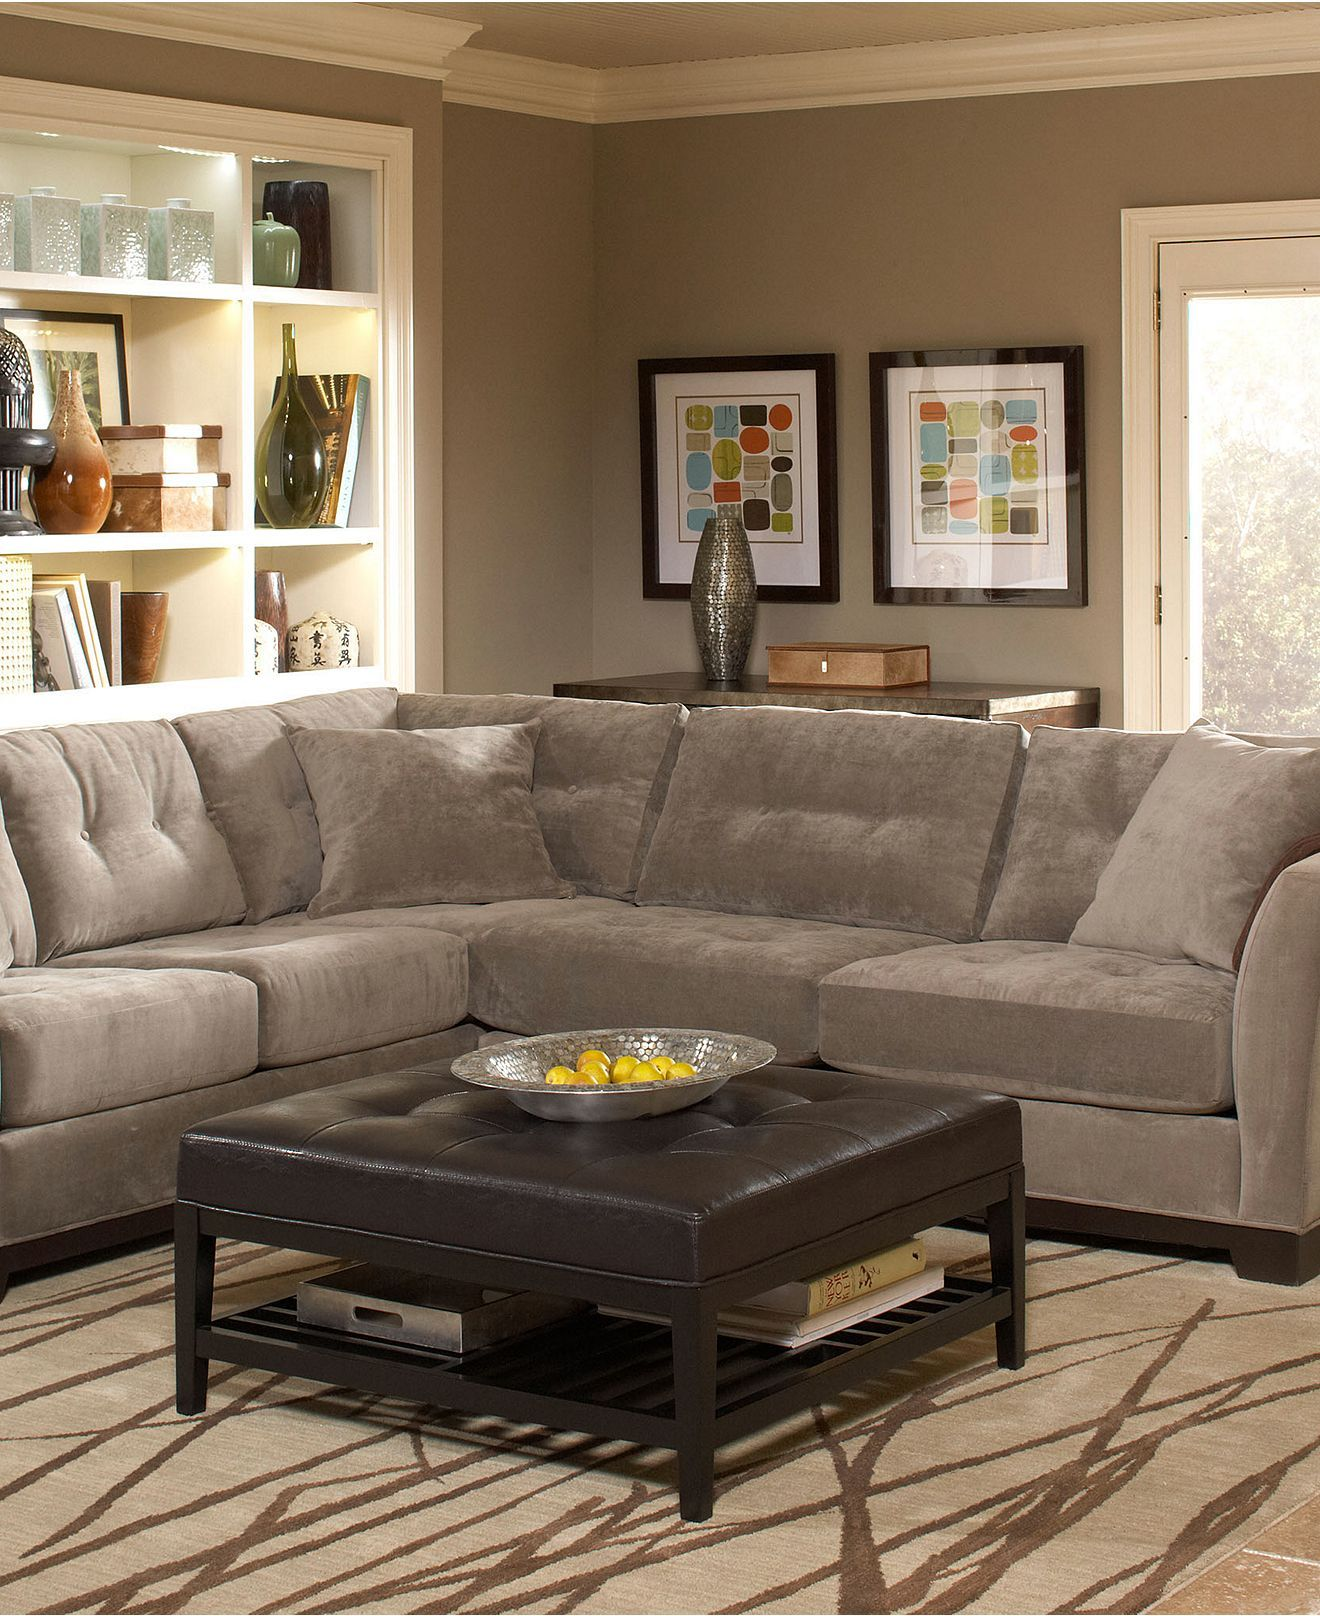 Macys Com Furniture: Hey Thats My Couch! Best Most Comfy Couch! Elliot Fabric